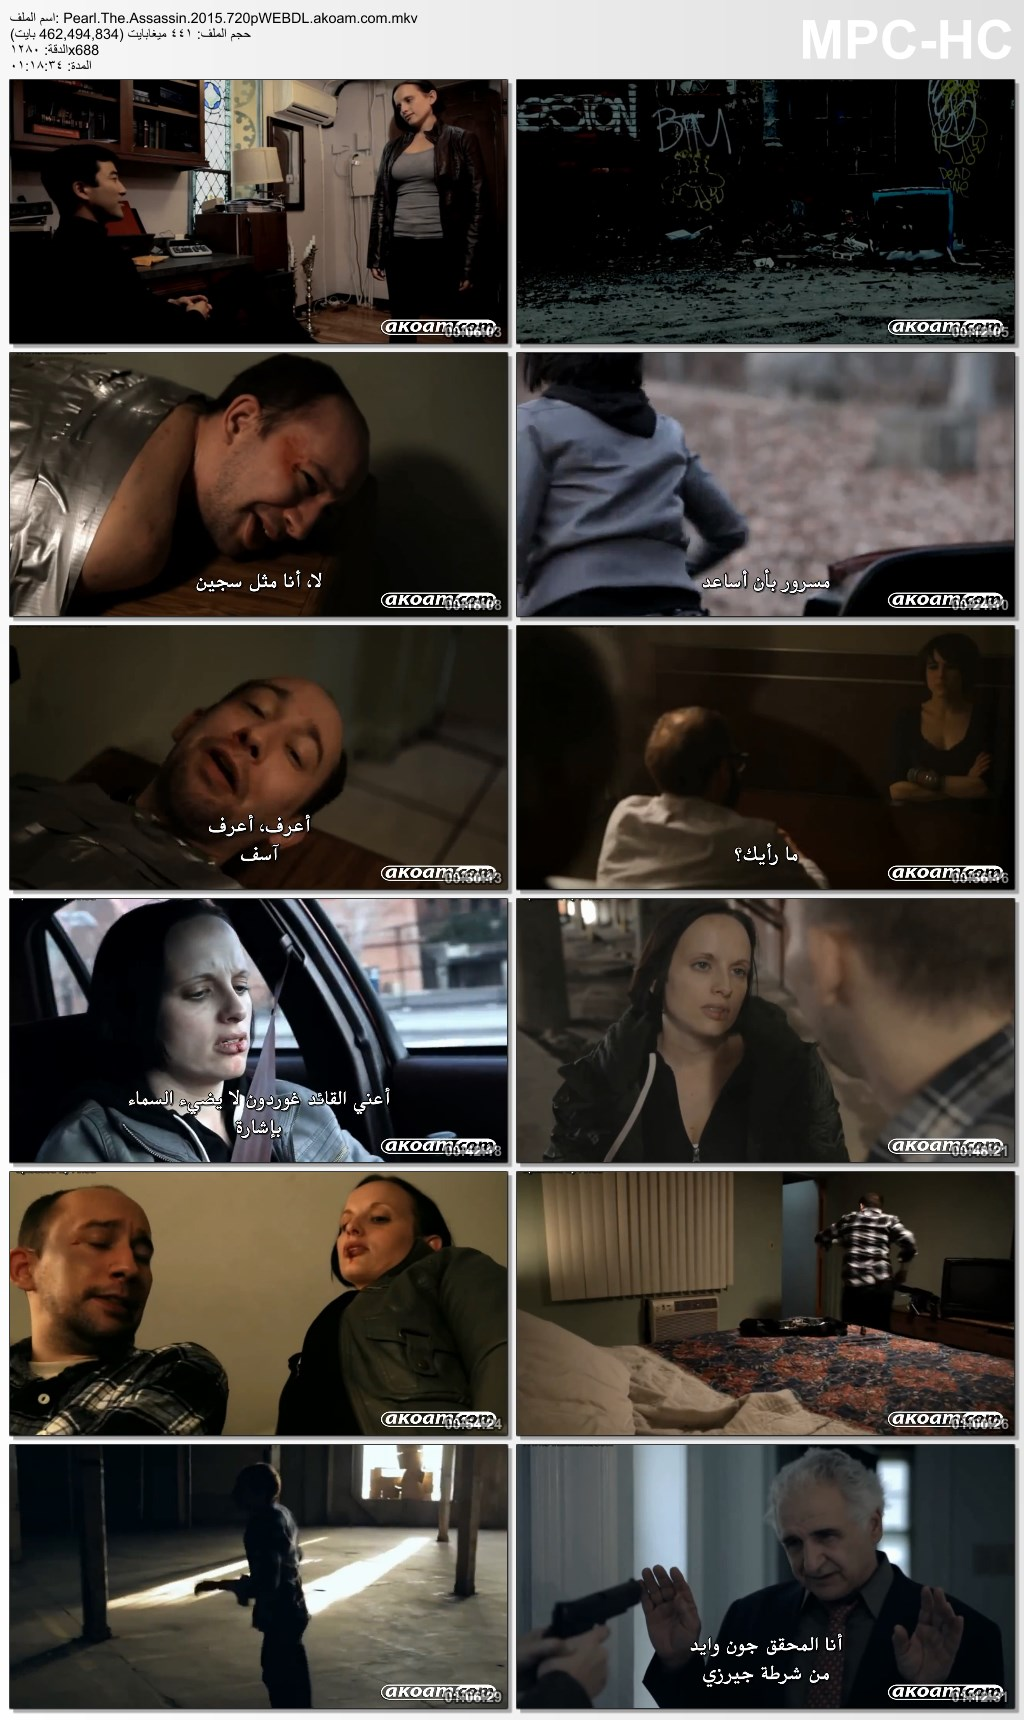 Pearl: The Assassin,الاكشن,الاثارة,Pearl: The Assassin 2015,2015,Assassin,Pearl,The Assassin